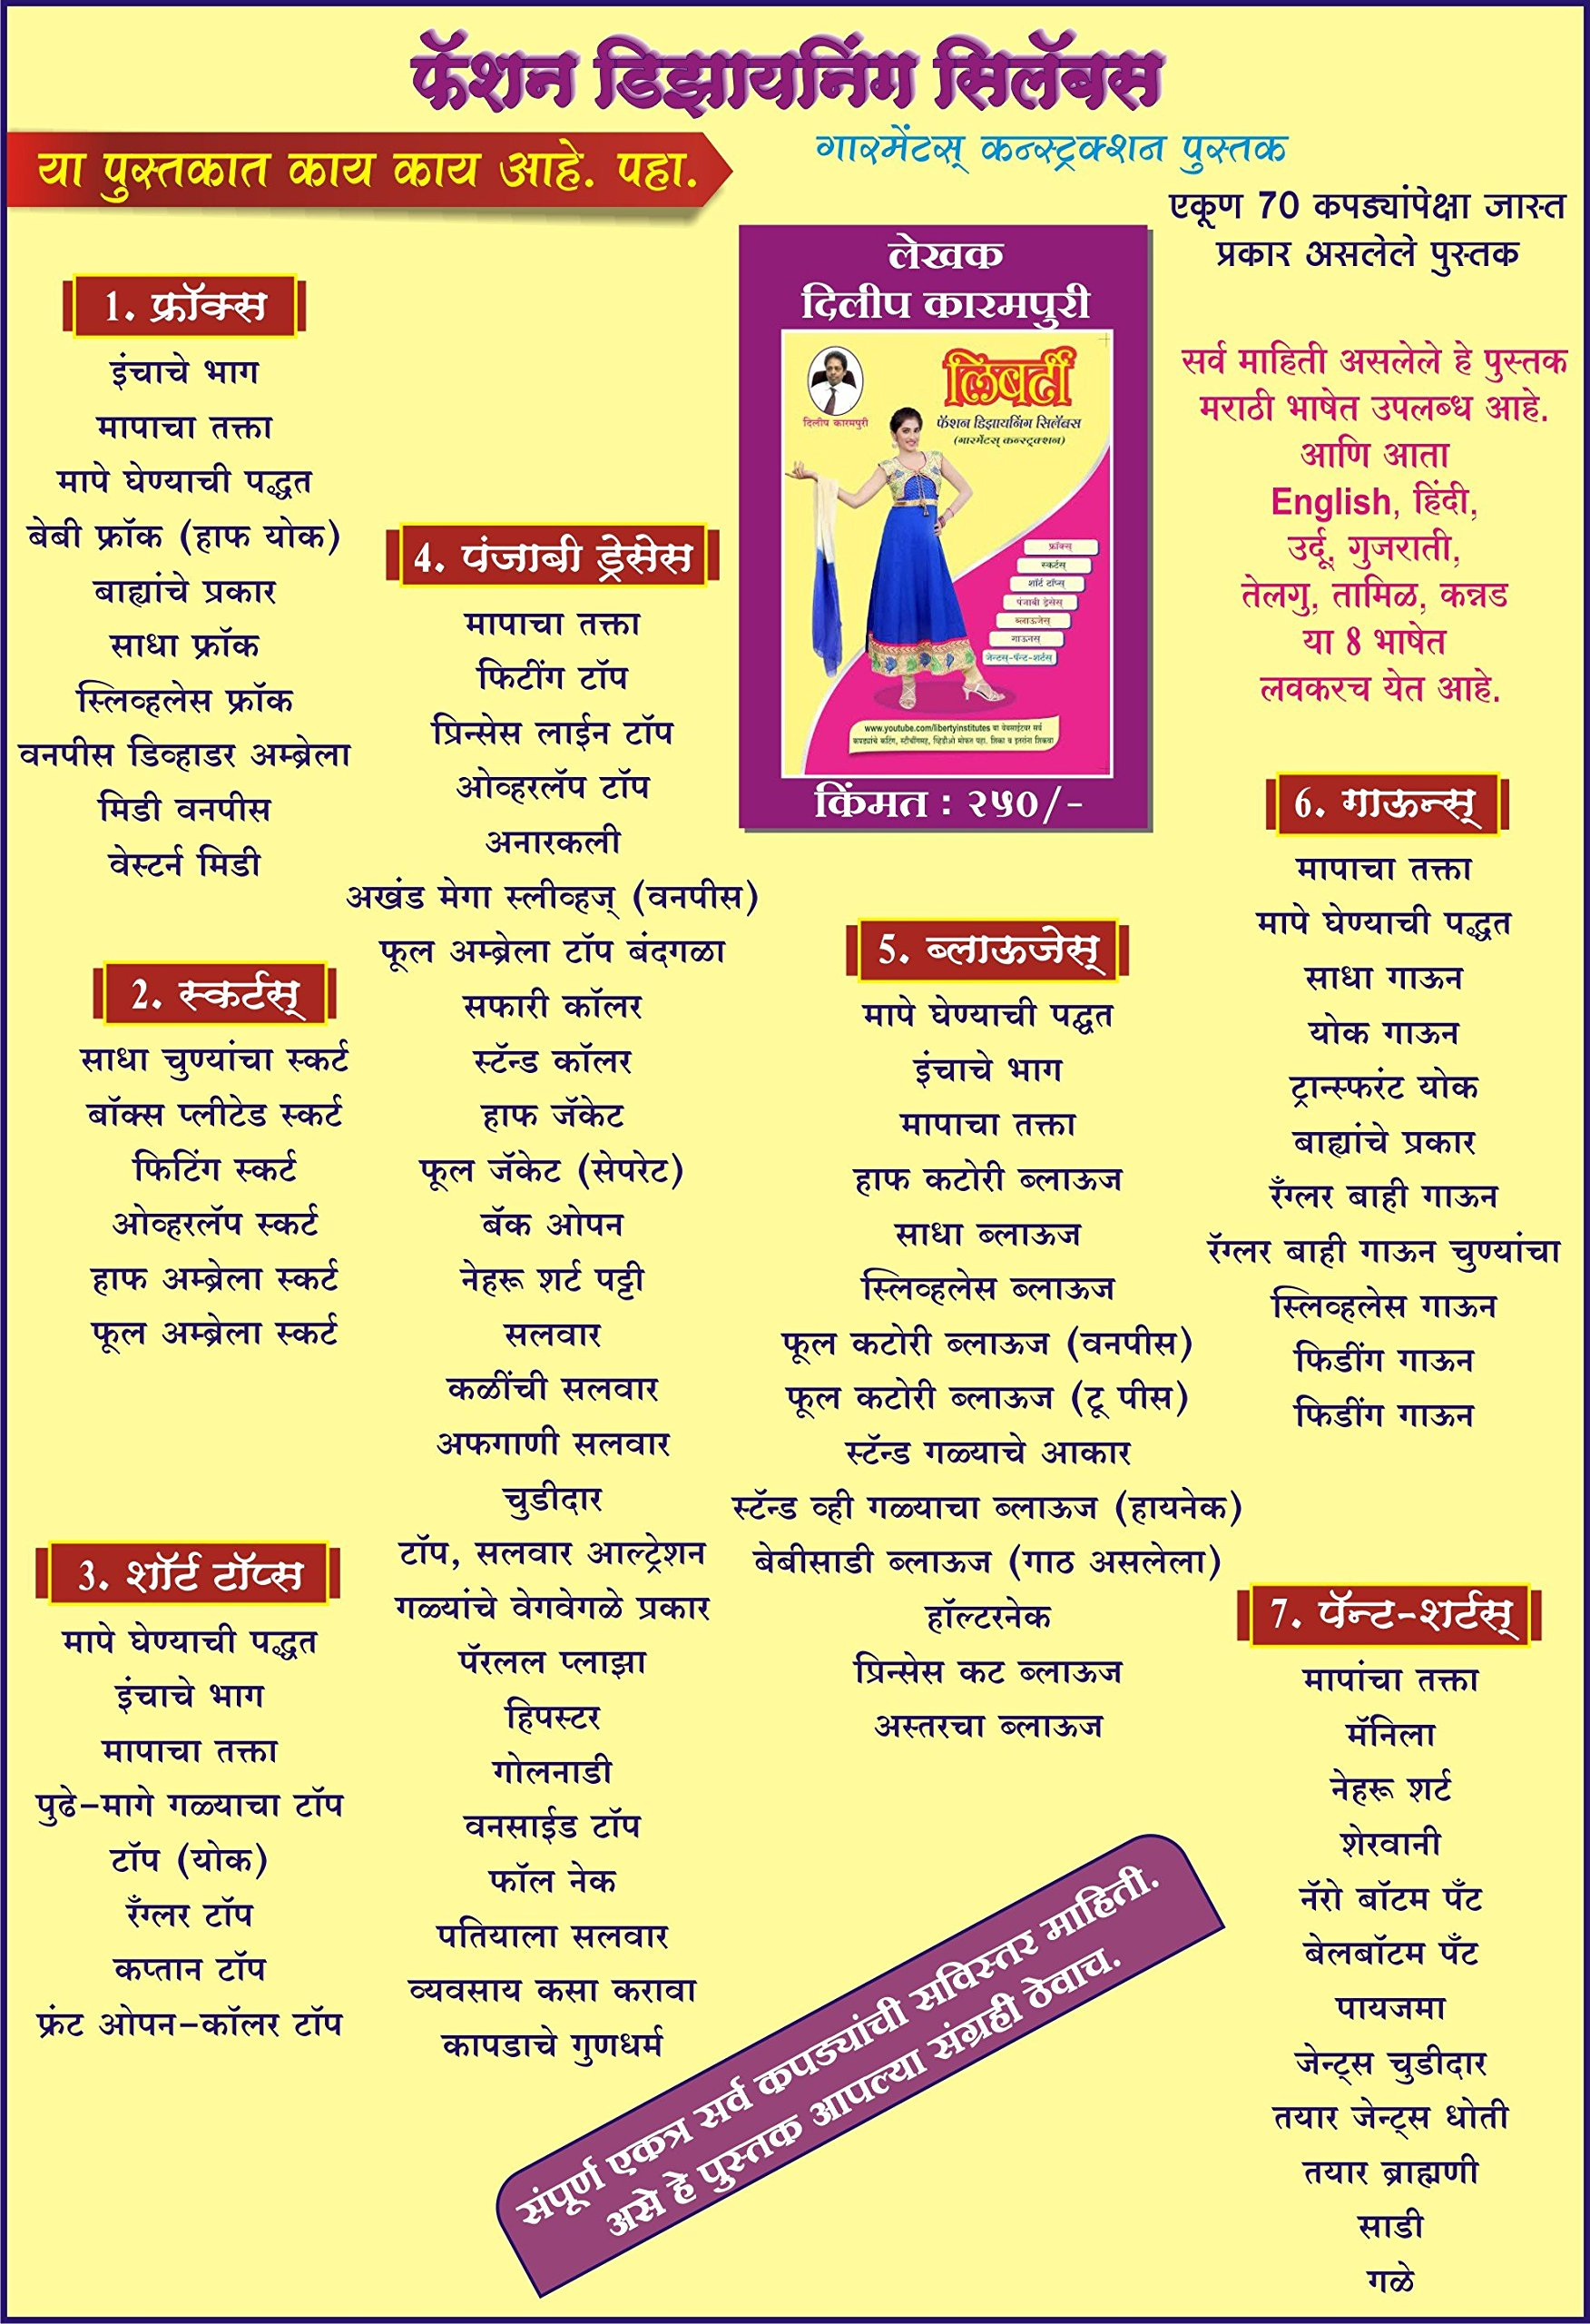 Buy Liberty Fashion Designing Syllabus Marathi Book Online At Low Prices In India Liberty Fashion Designing Syllabus Marathi Reviews Ratings Amazon In